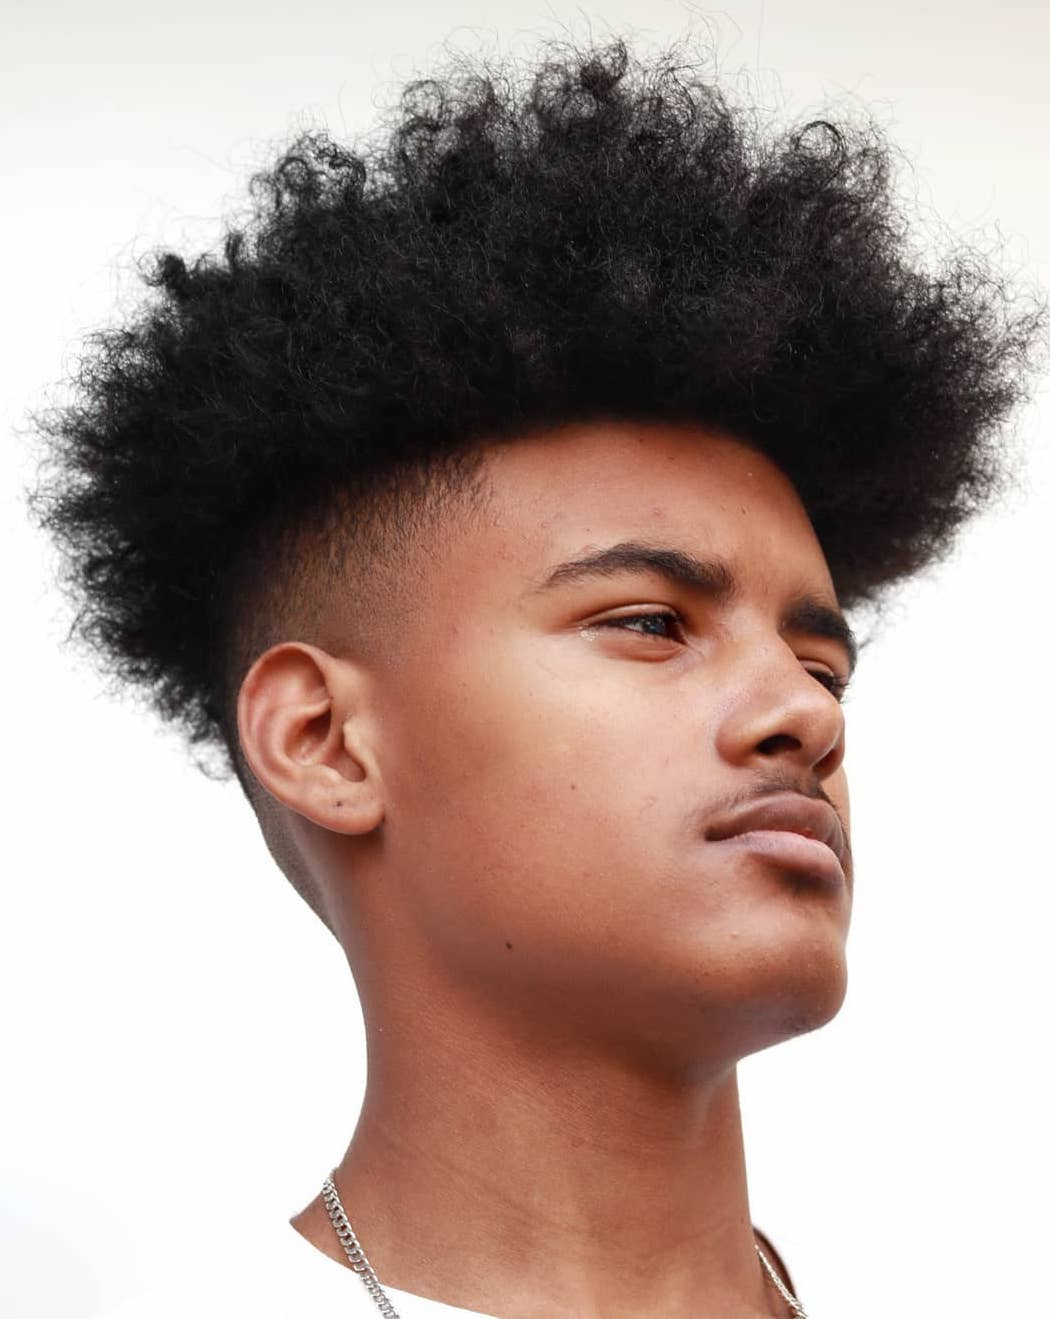 Afro Skin Fade with Undercut